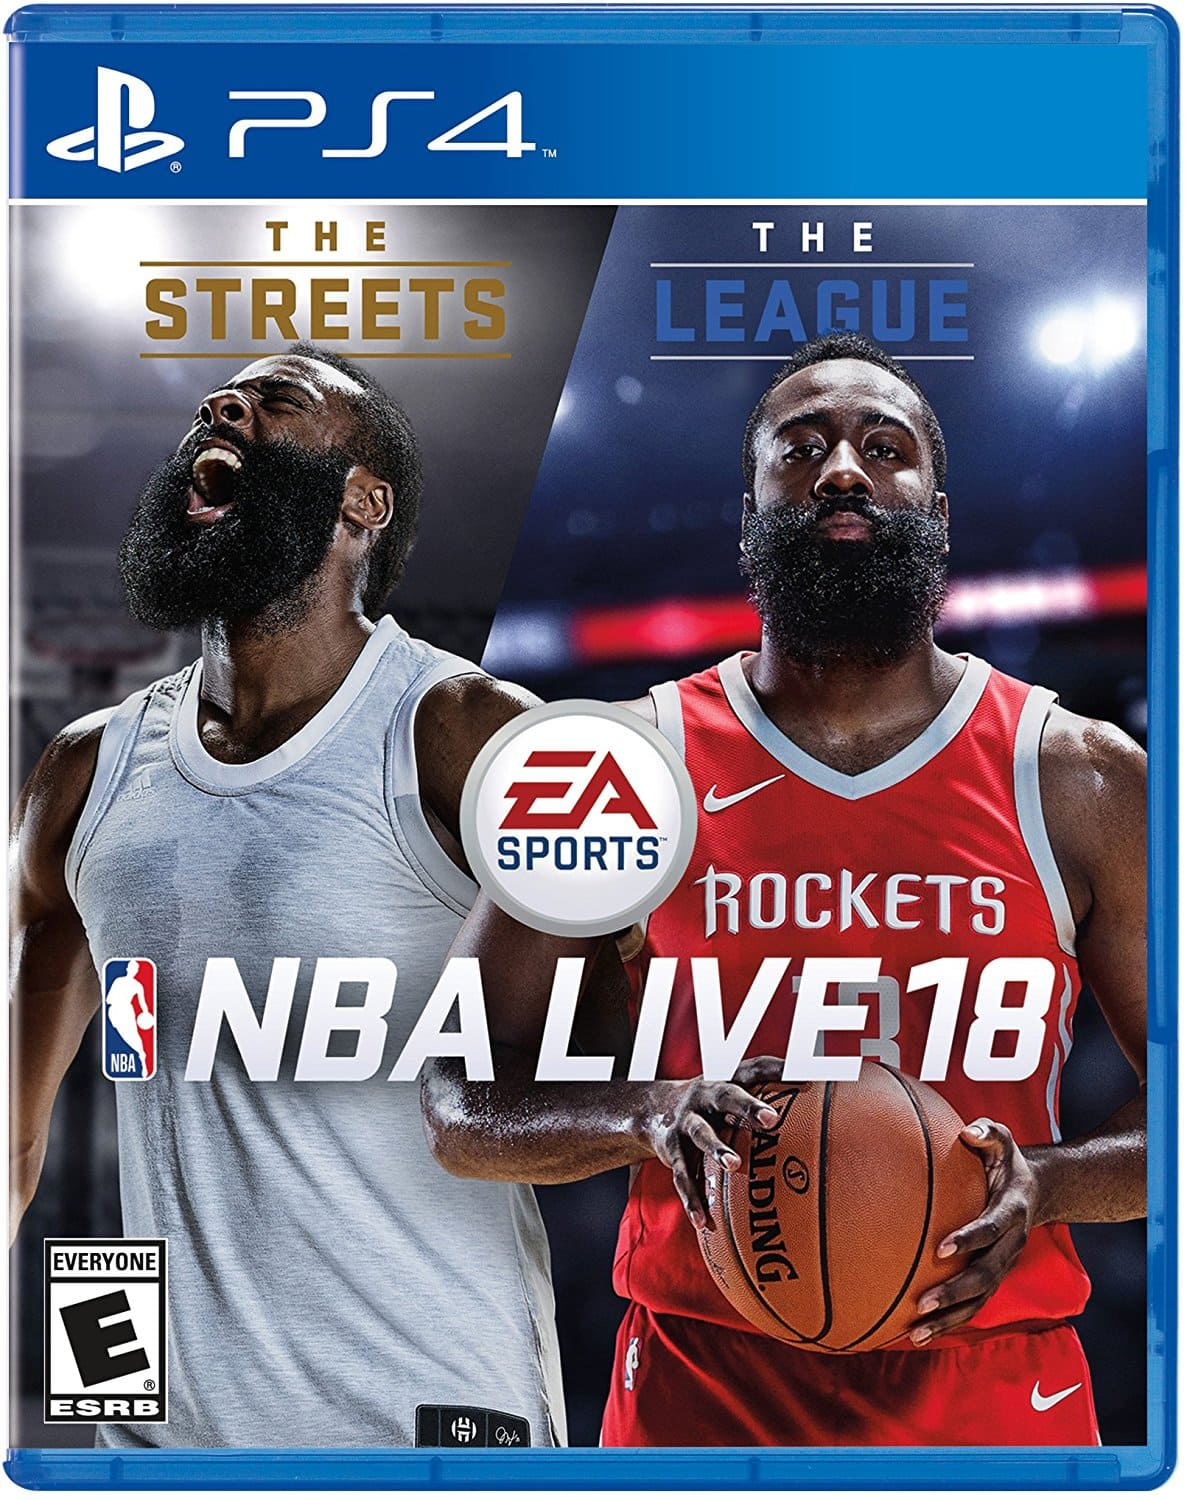 NBA Live 18 for PS4- $29.99